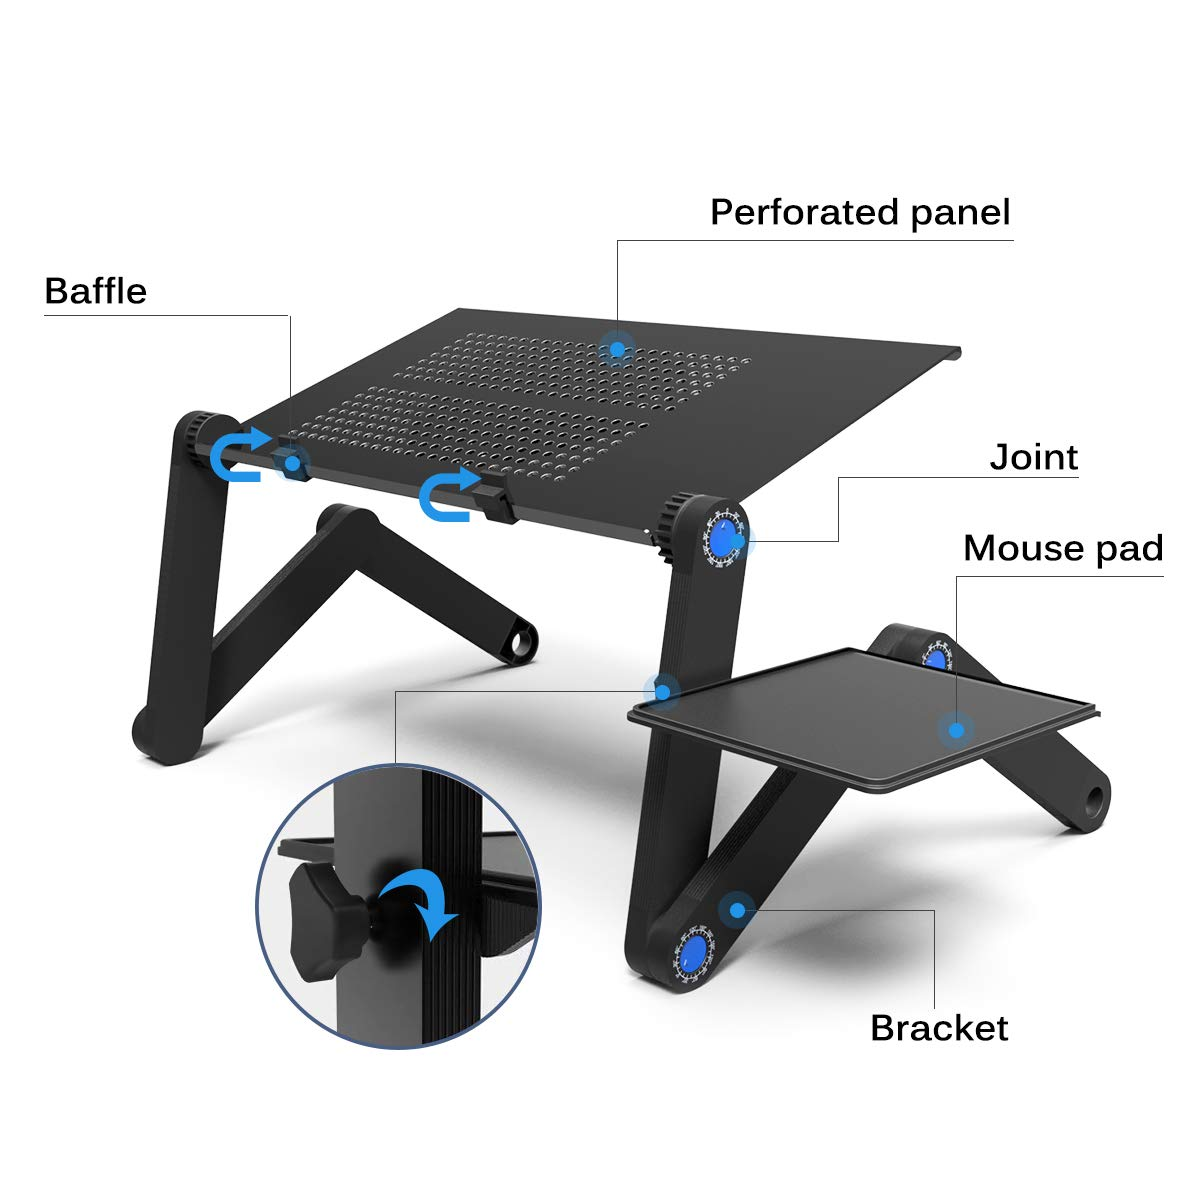 Adjustable Laptop Desk Bed Stand 23.2 Laptop Stand for Bed Couch Sofa Foldable Laptop Table Portable with Cooling /& Fan Mouse Pad Lightweight Portable Bed Sofa Couch Lap Tray Compatible with Tablet Notebook MacBook